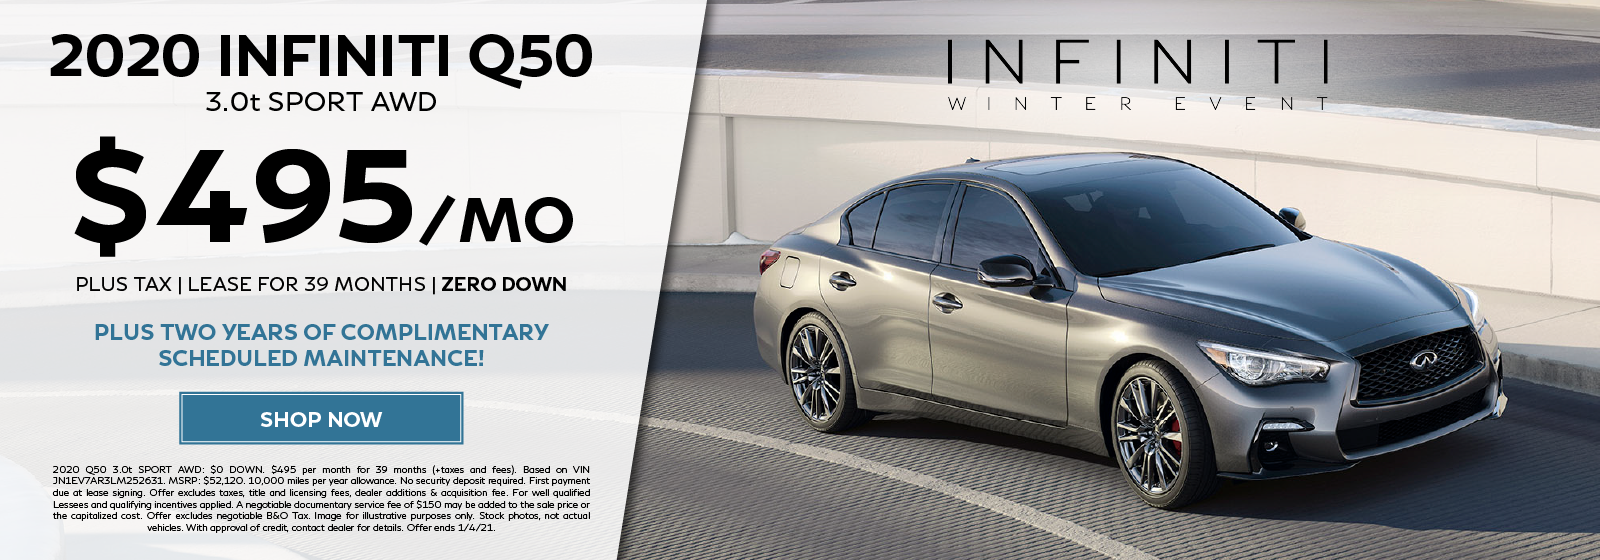 Lease a new 2020 Q50 3.0t SPORT AWD for $495 per month for 39 months plus get two years of complimentary schedulec maintenance. Click to shop now.